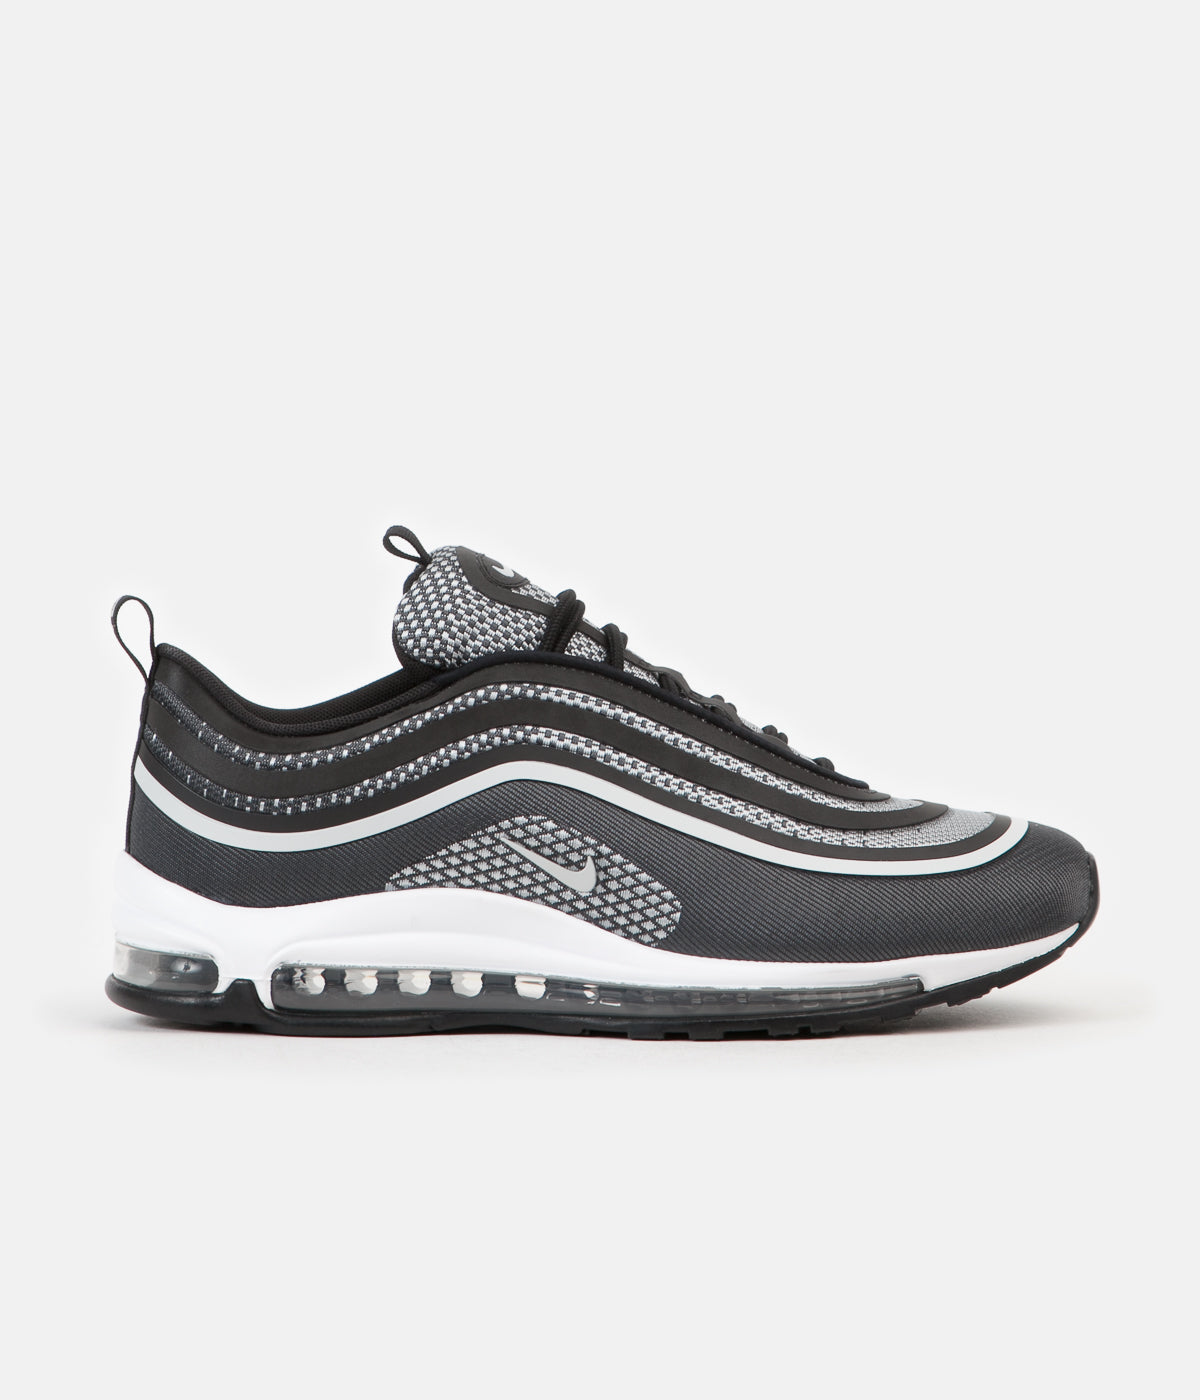 new styles 43451 062ec ... Nike Air Max 97 Ultra  17 Shoes - Black   Pure Platinum - Anthracite ...